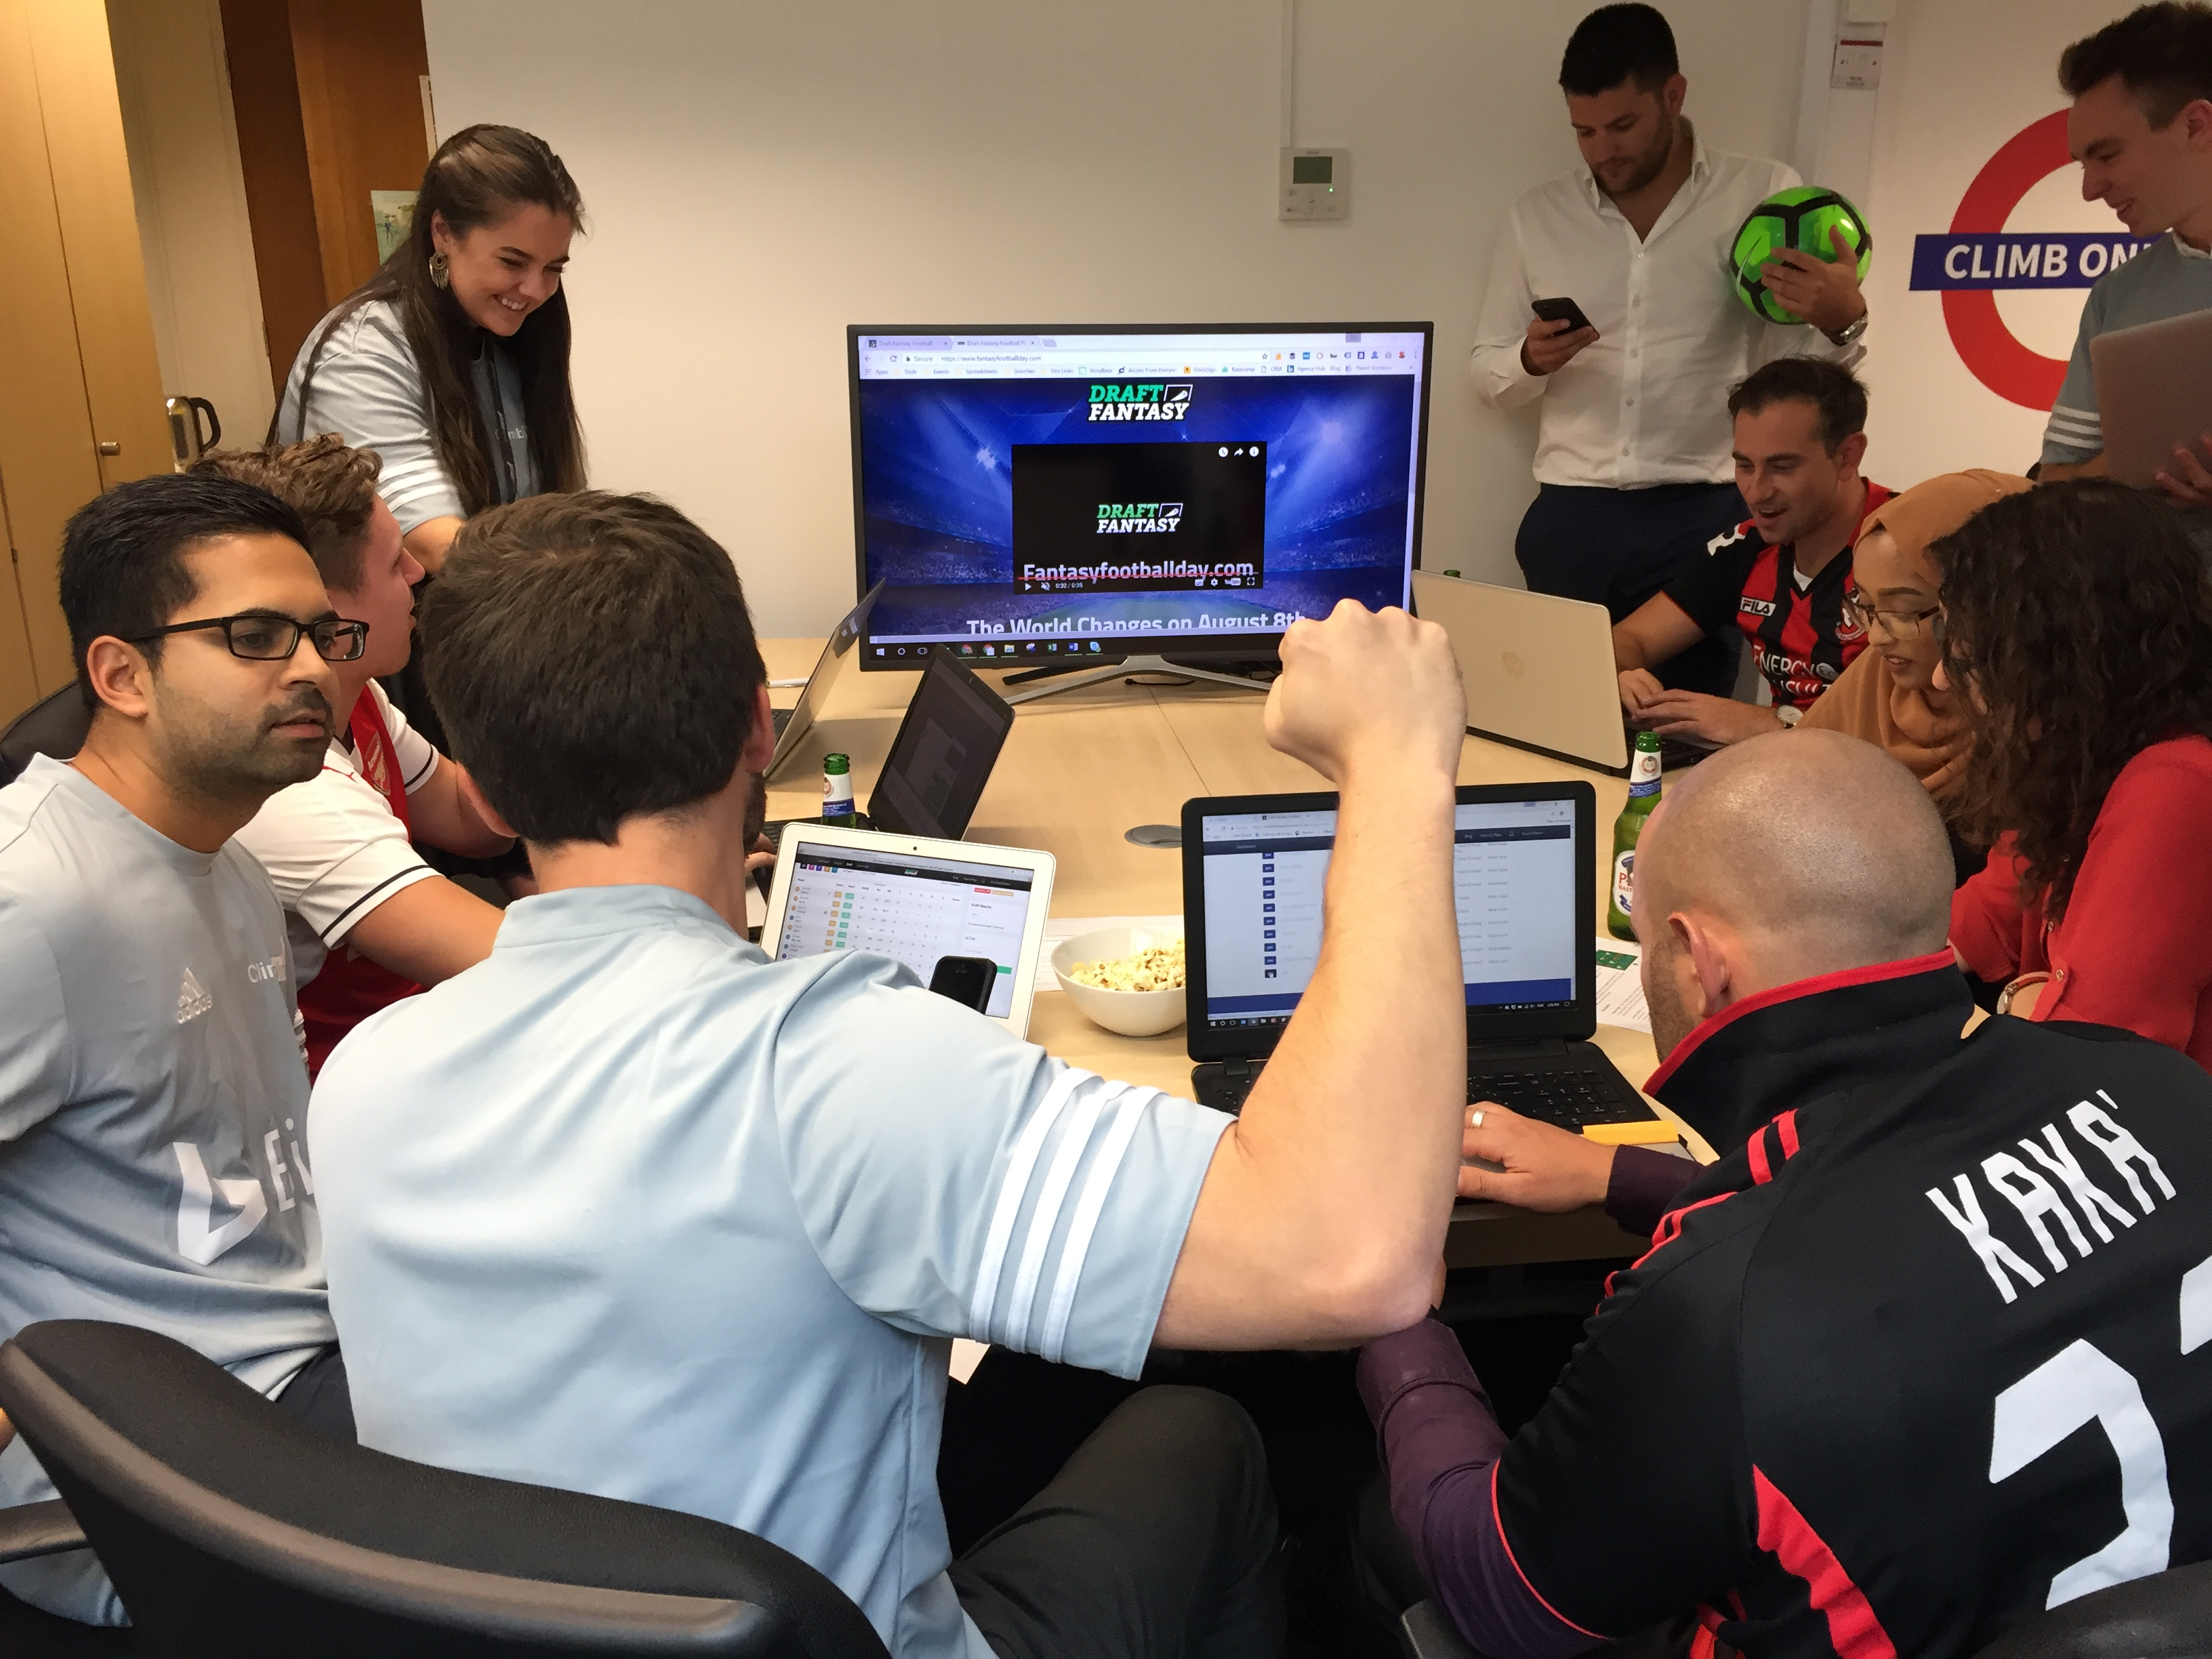 Apprentice winner Mark Wright and Climb Online employees enjoy time off on Fantasy Football Day to pick their teams for the season